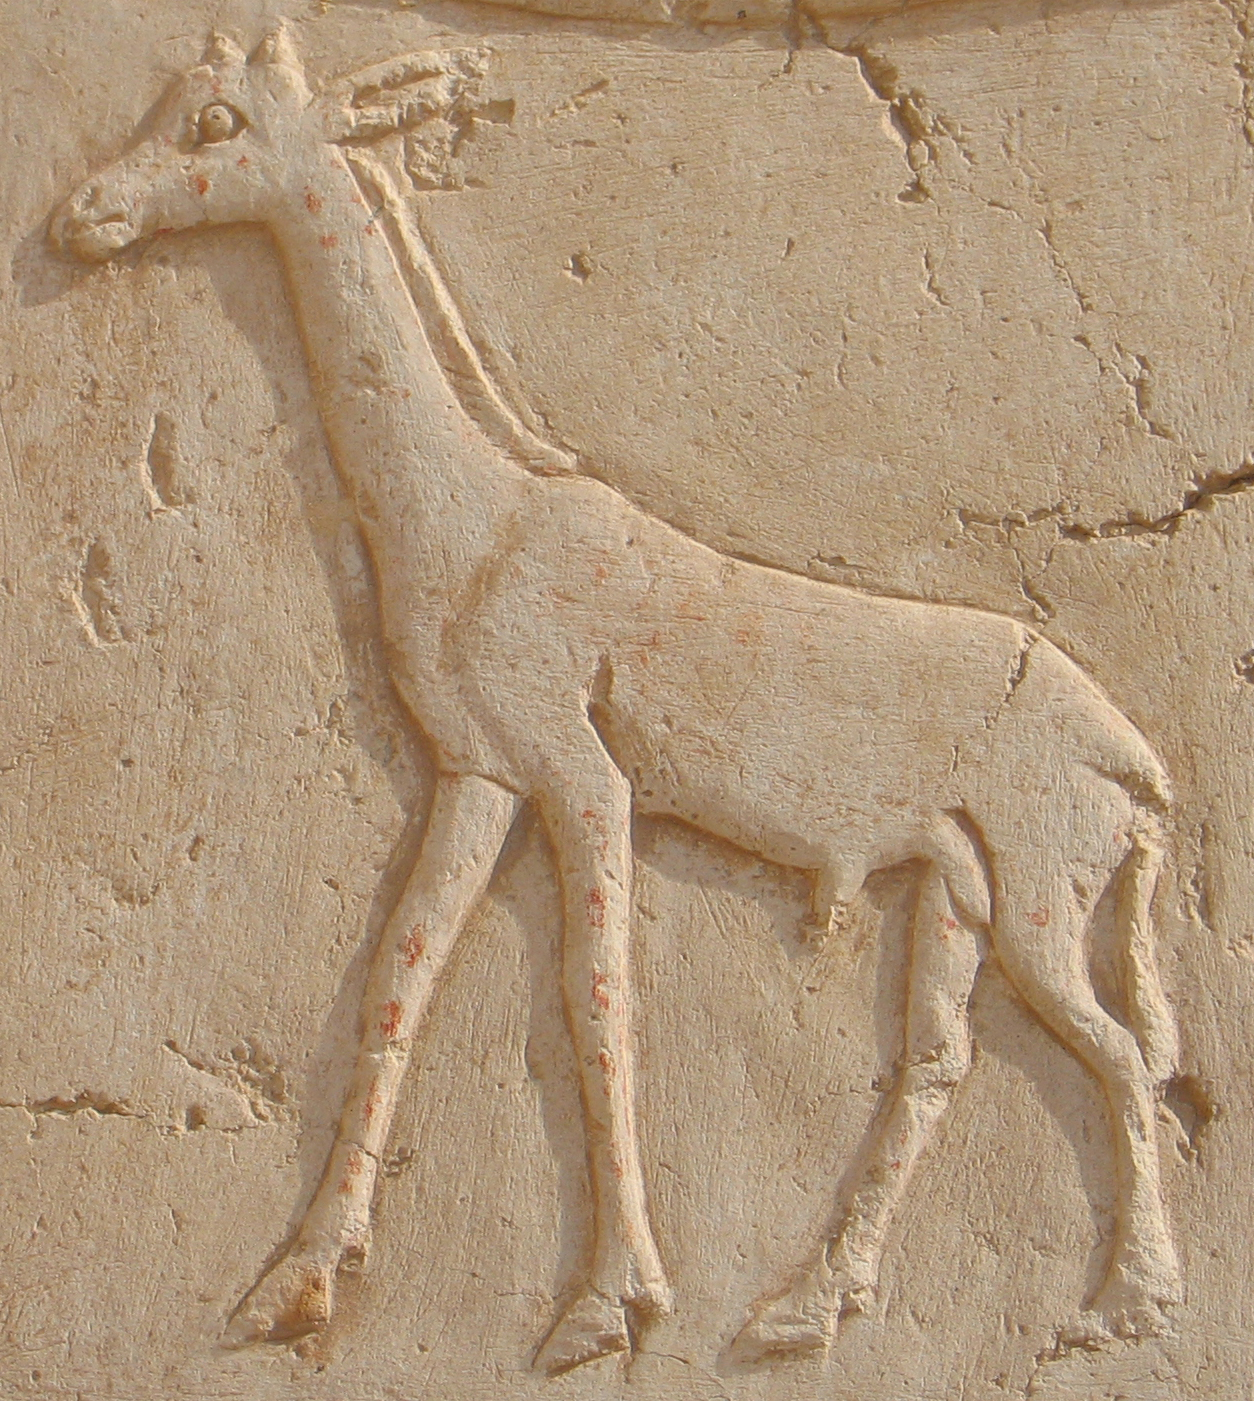 A hieroglyph of a giraffe carved on the northern wall. Photo J. Iwaszczuk